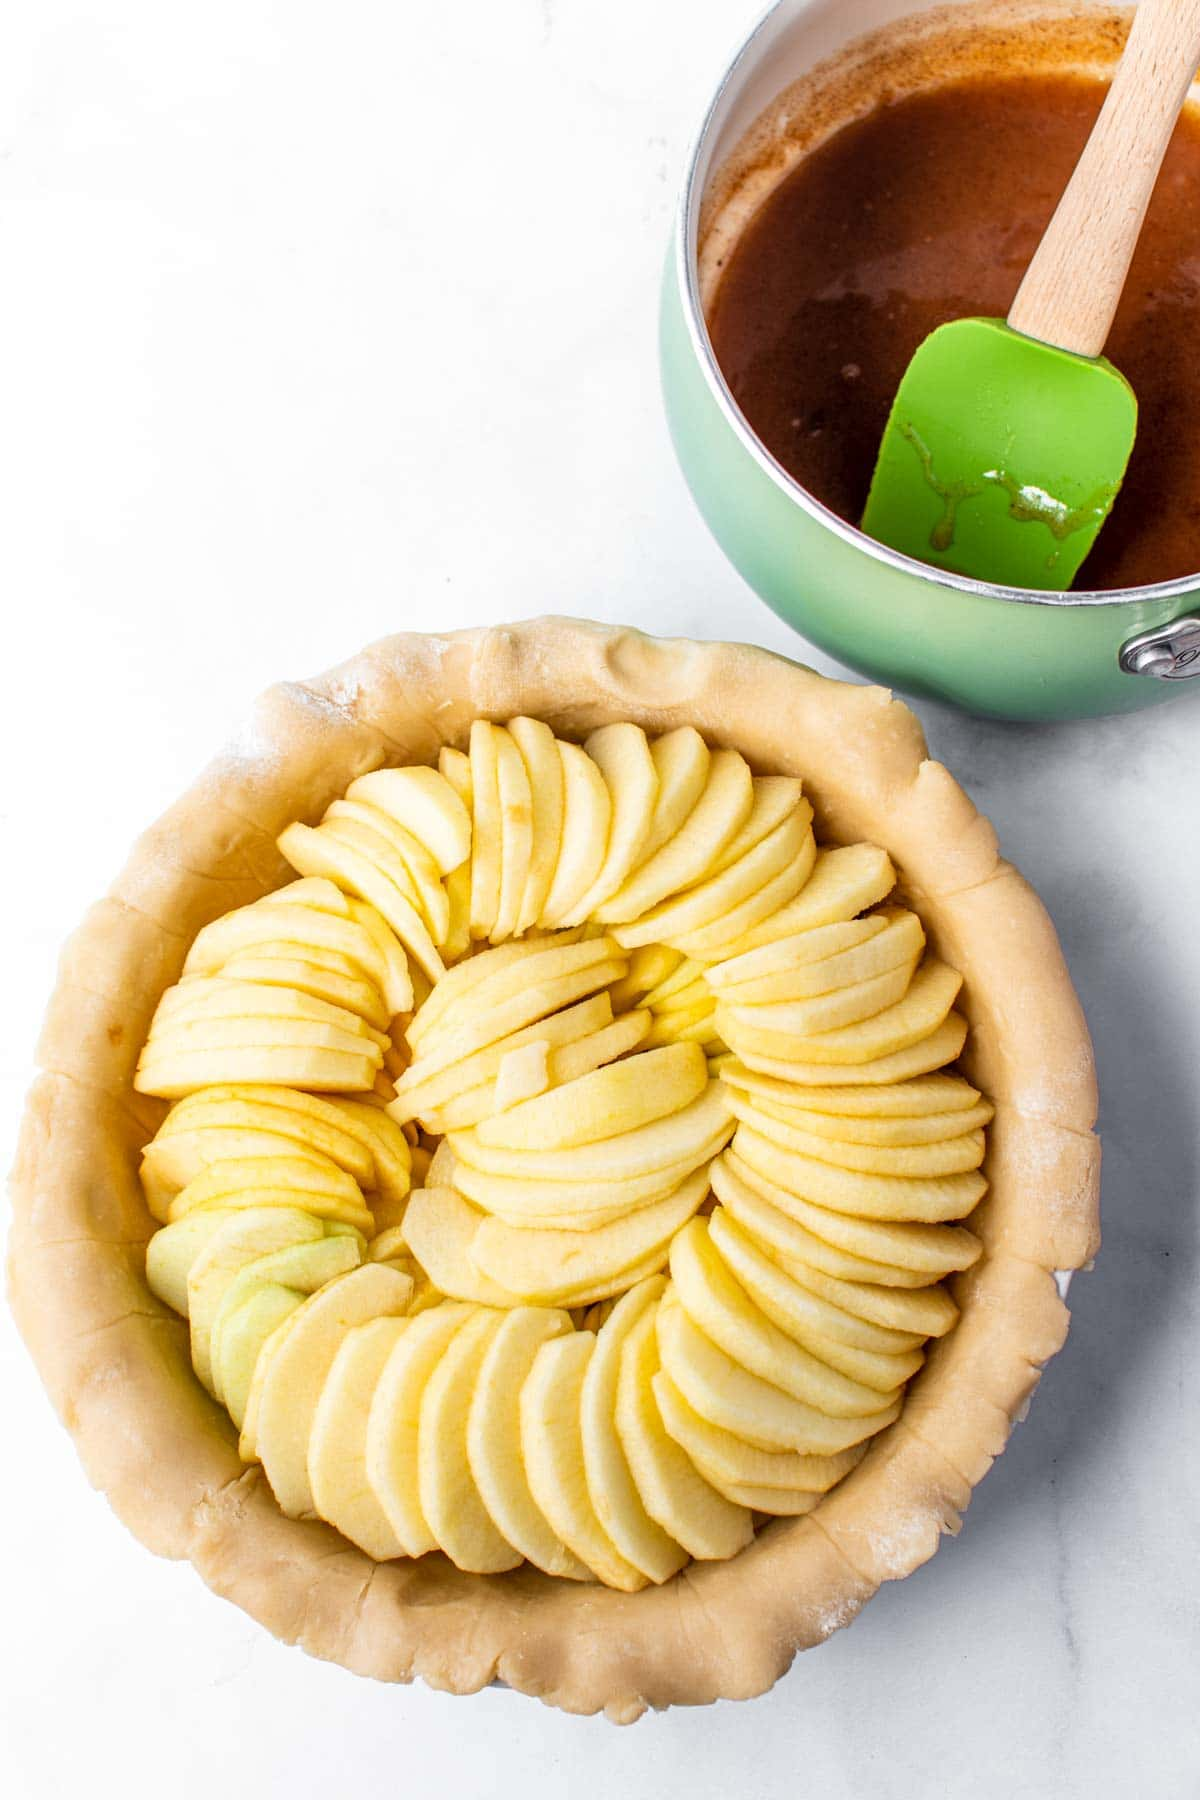 Apple pie slices in a pie crust